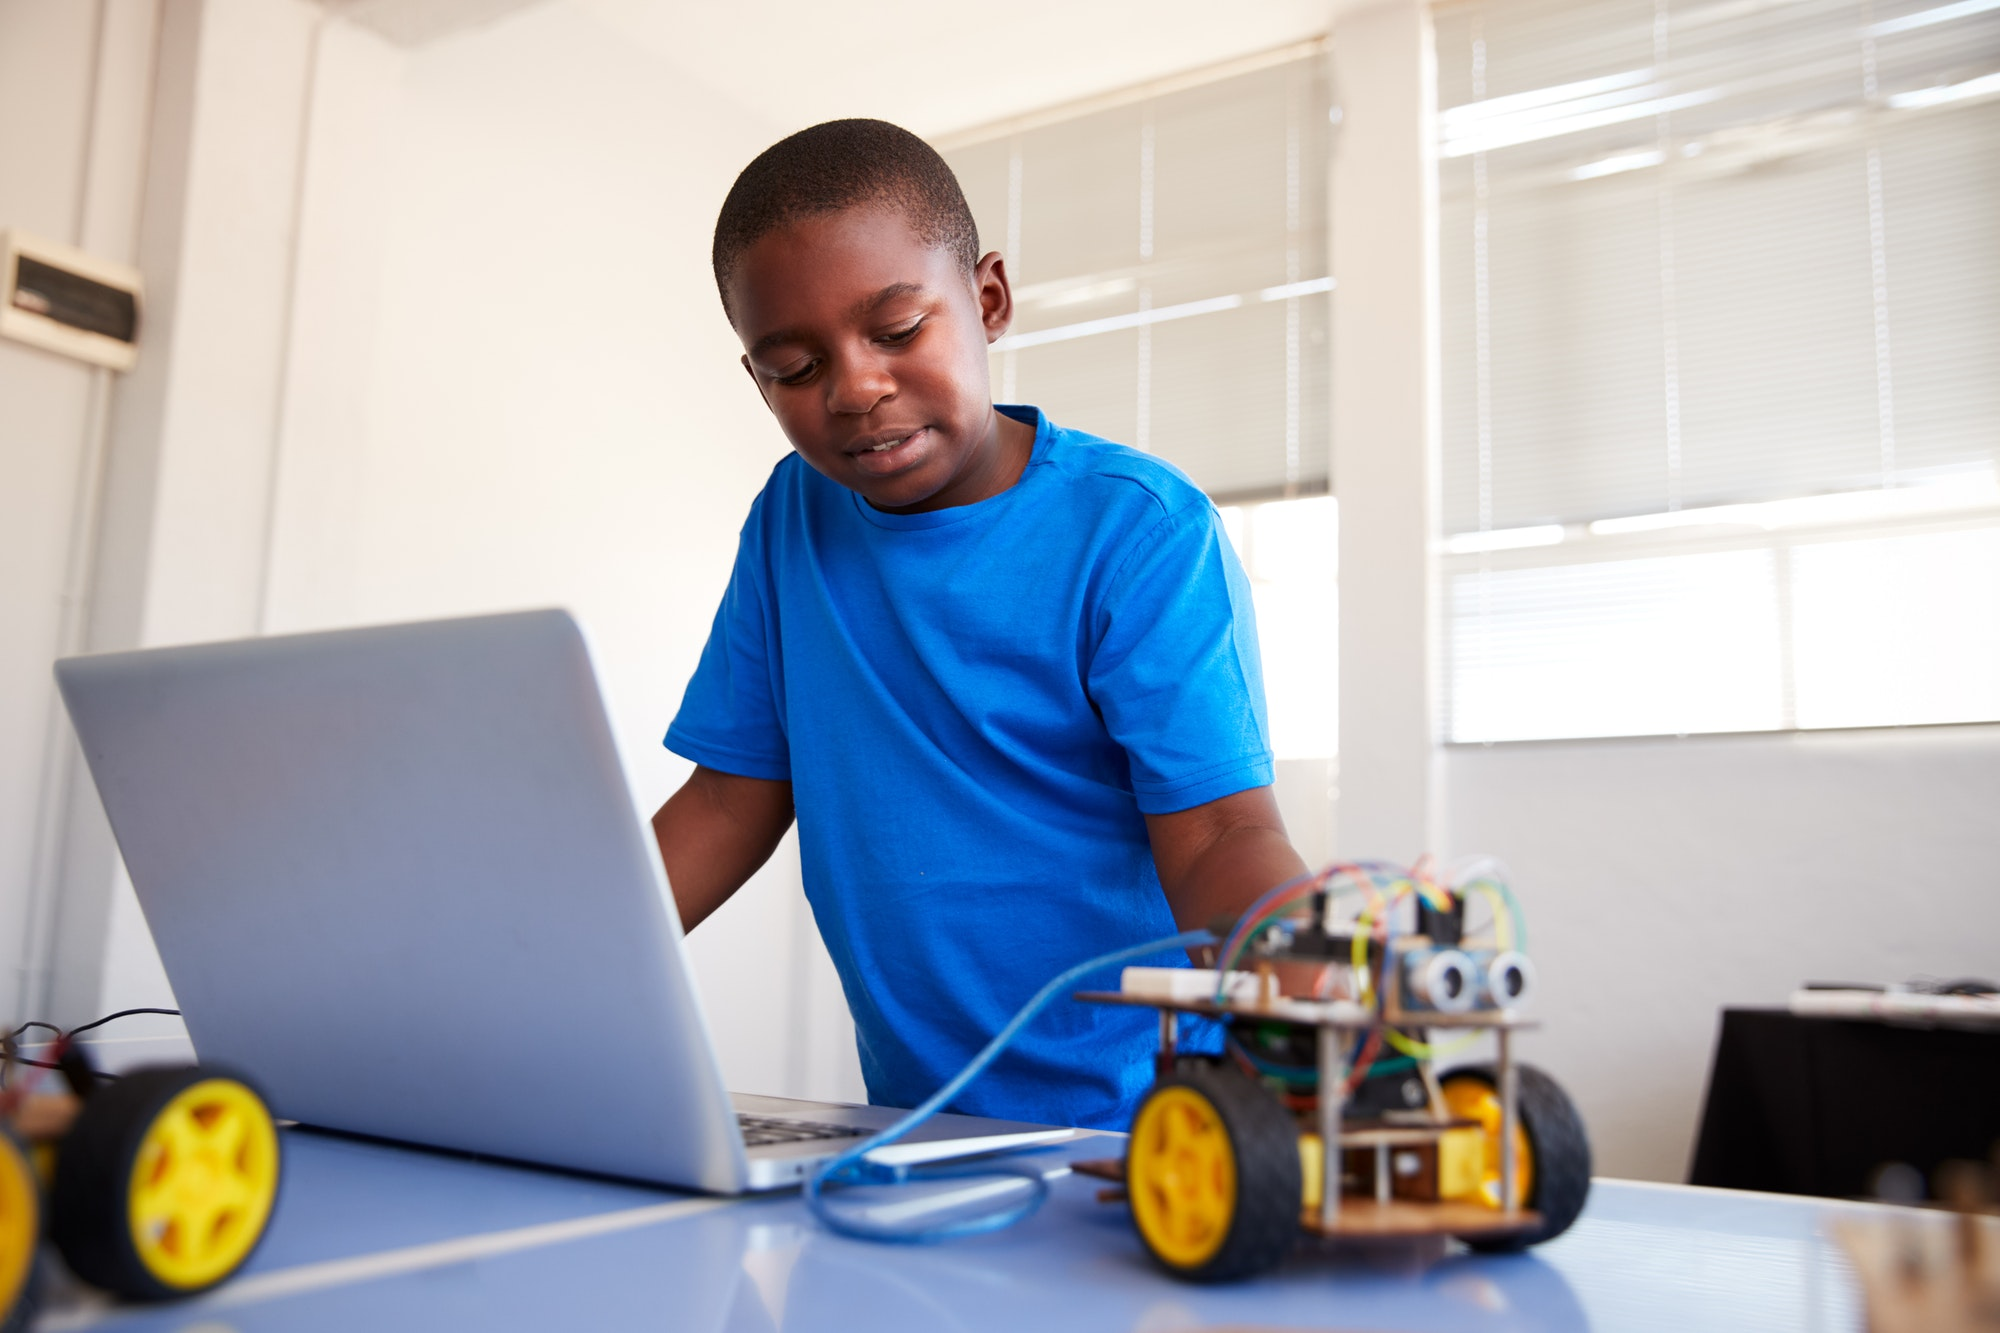 Male Student Building And Programing Robot Vehicle In After School Computer Coding Class